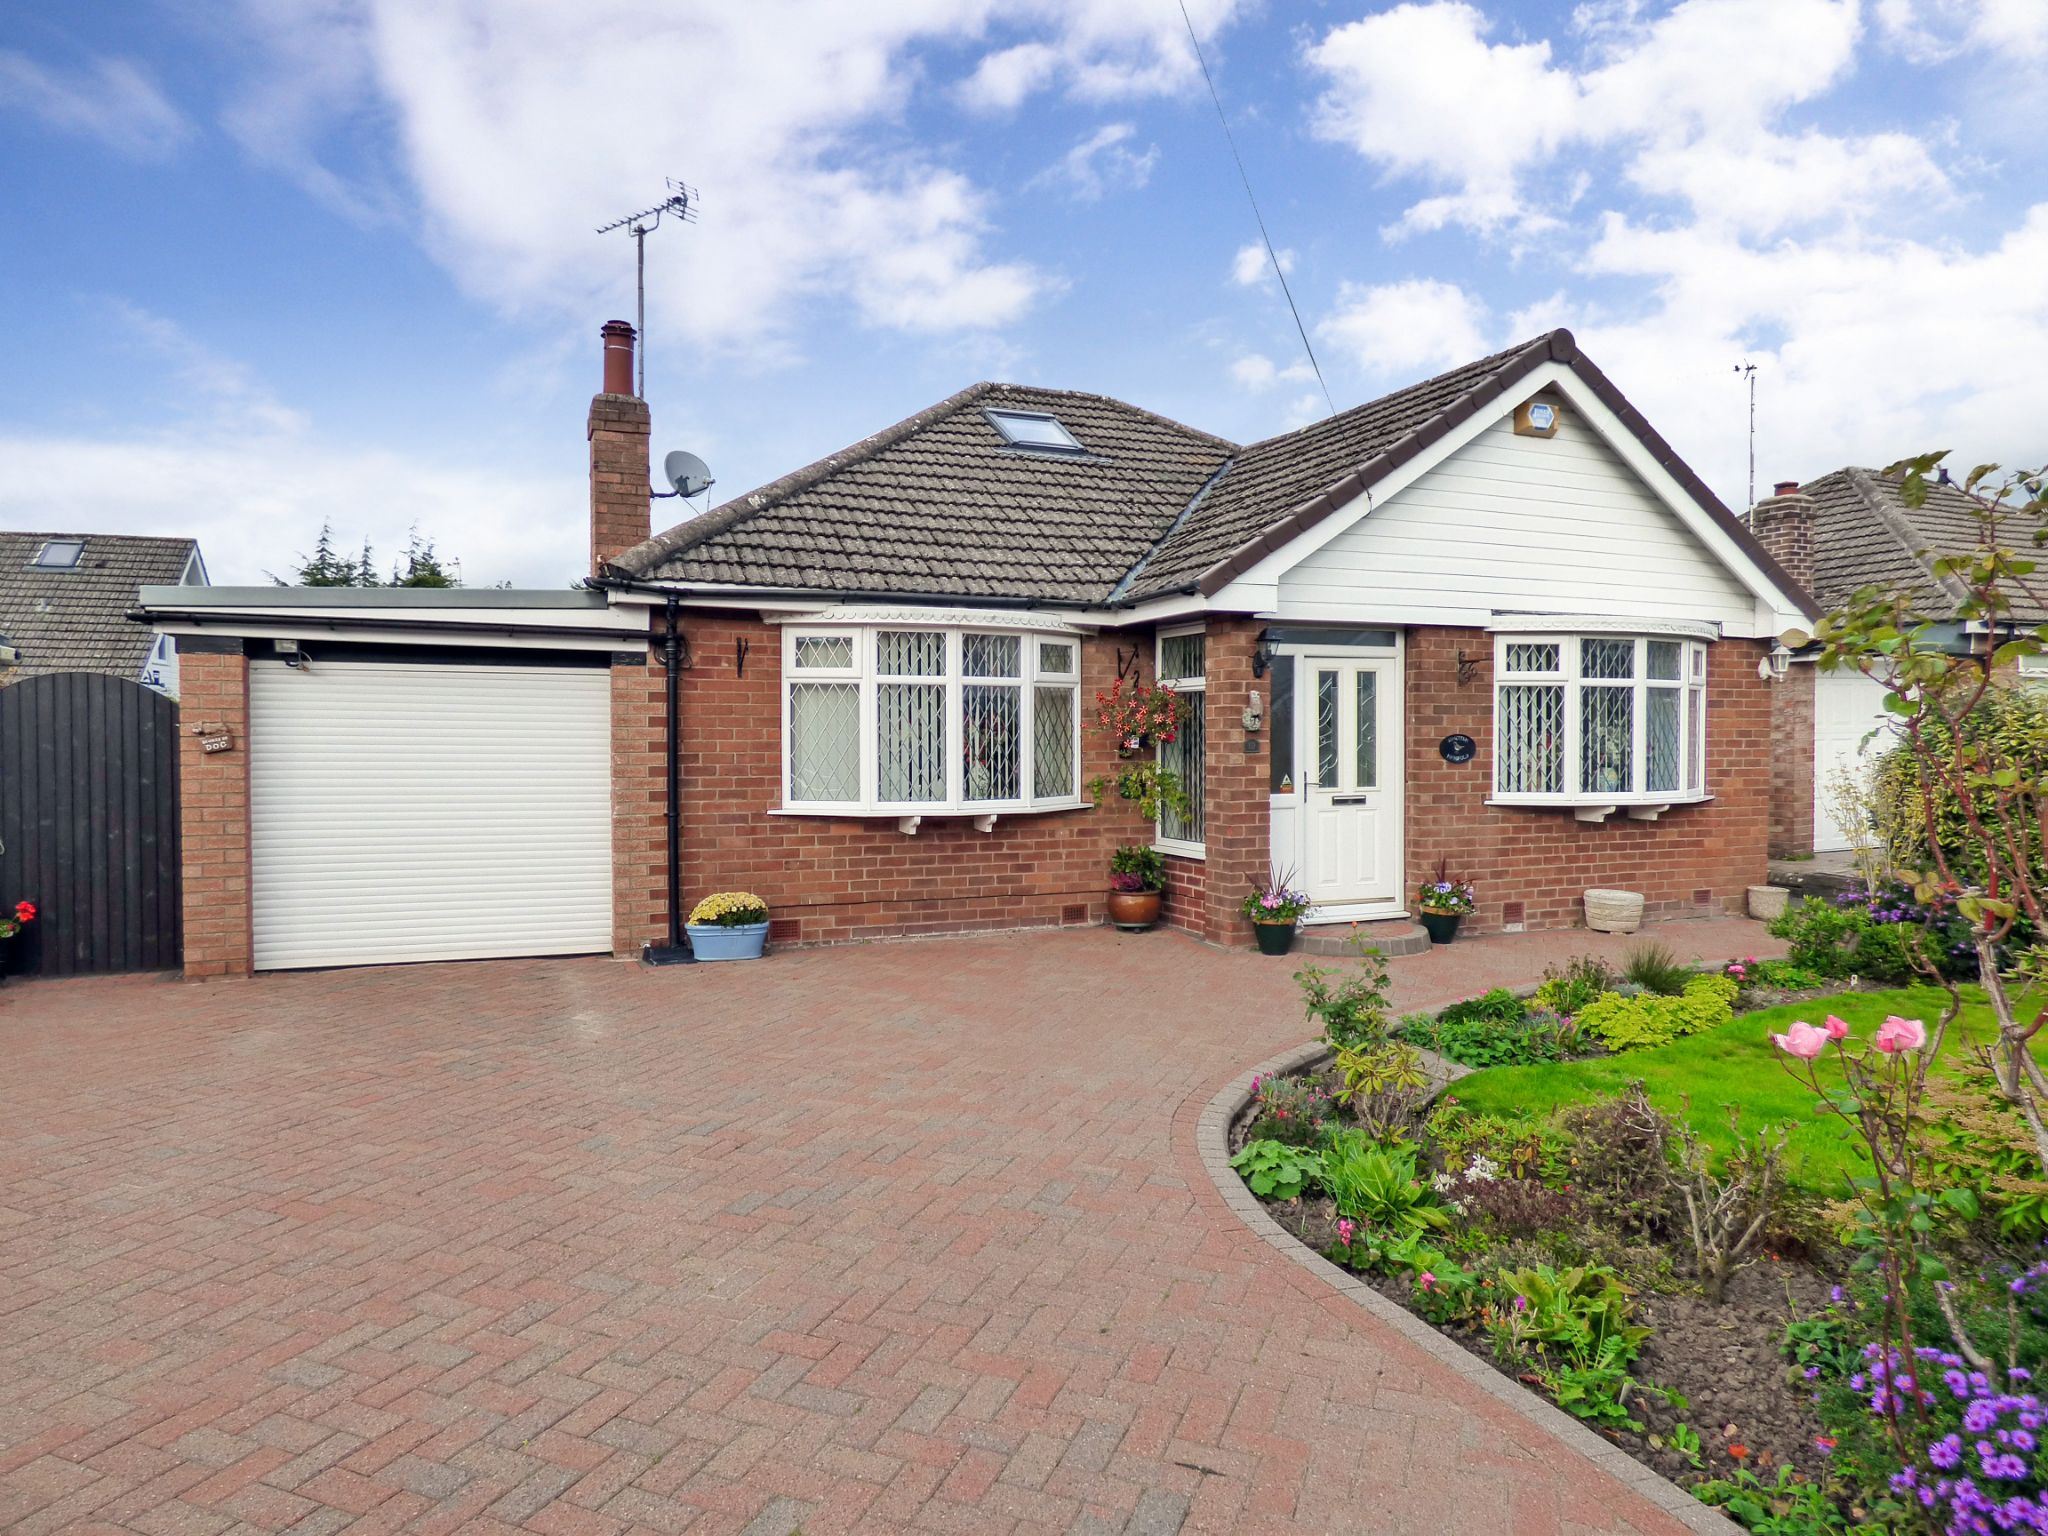 4 Bedroom Detached Bungalow For Sale - Photograph 1